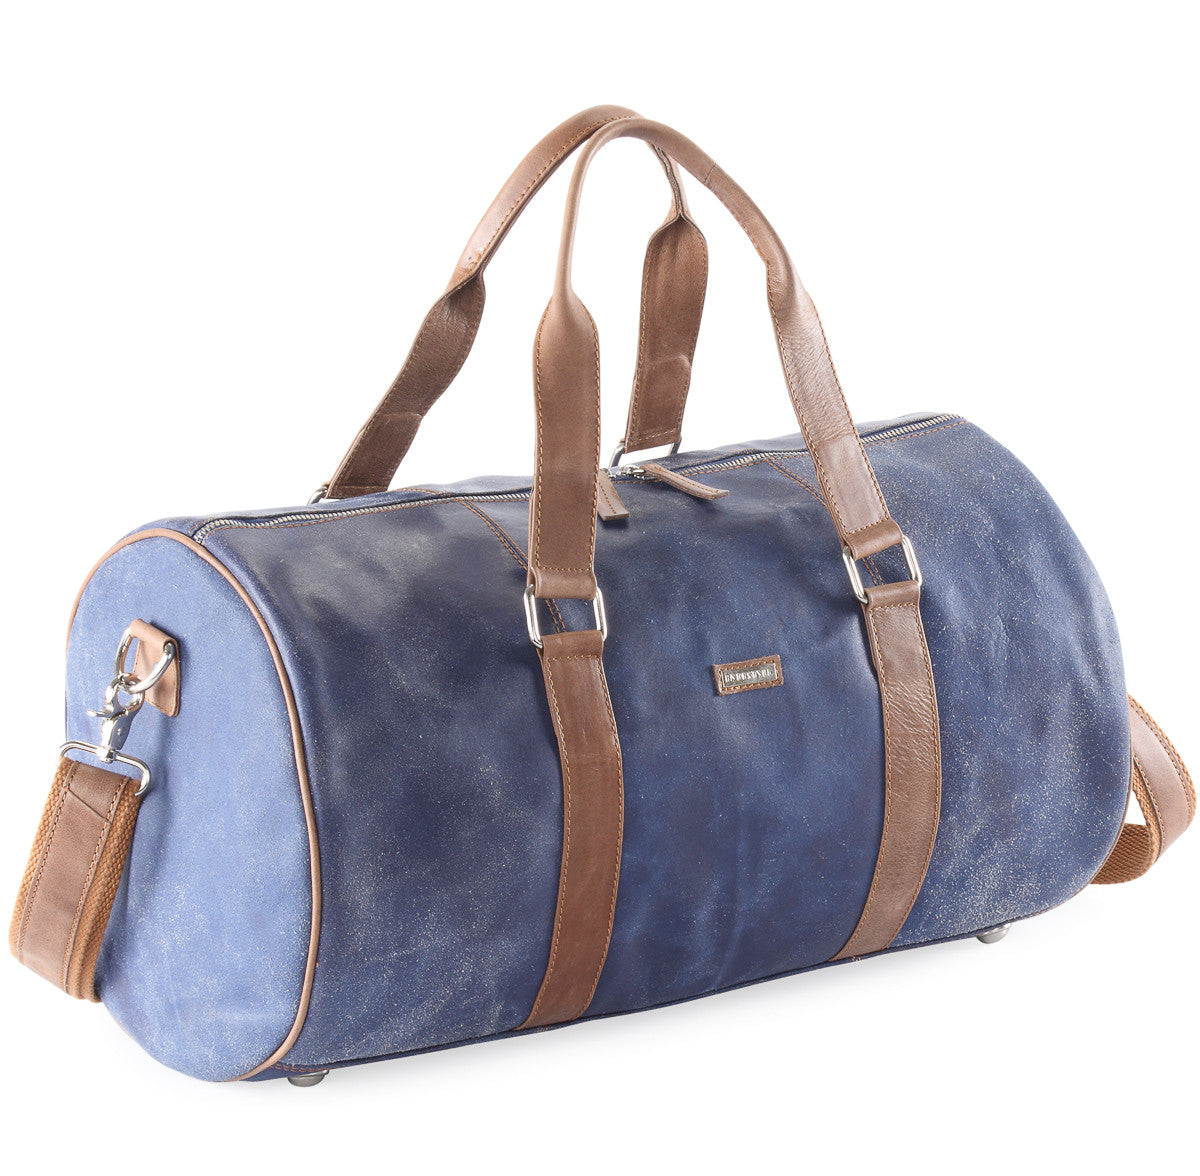 Crackle Leather Duffel Bag #Tt08